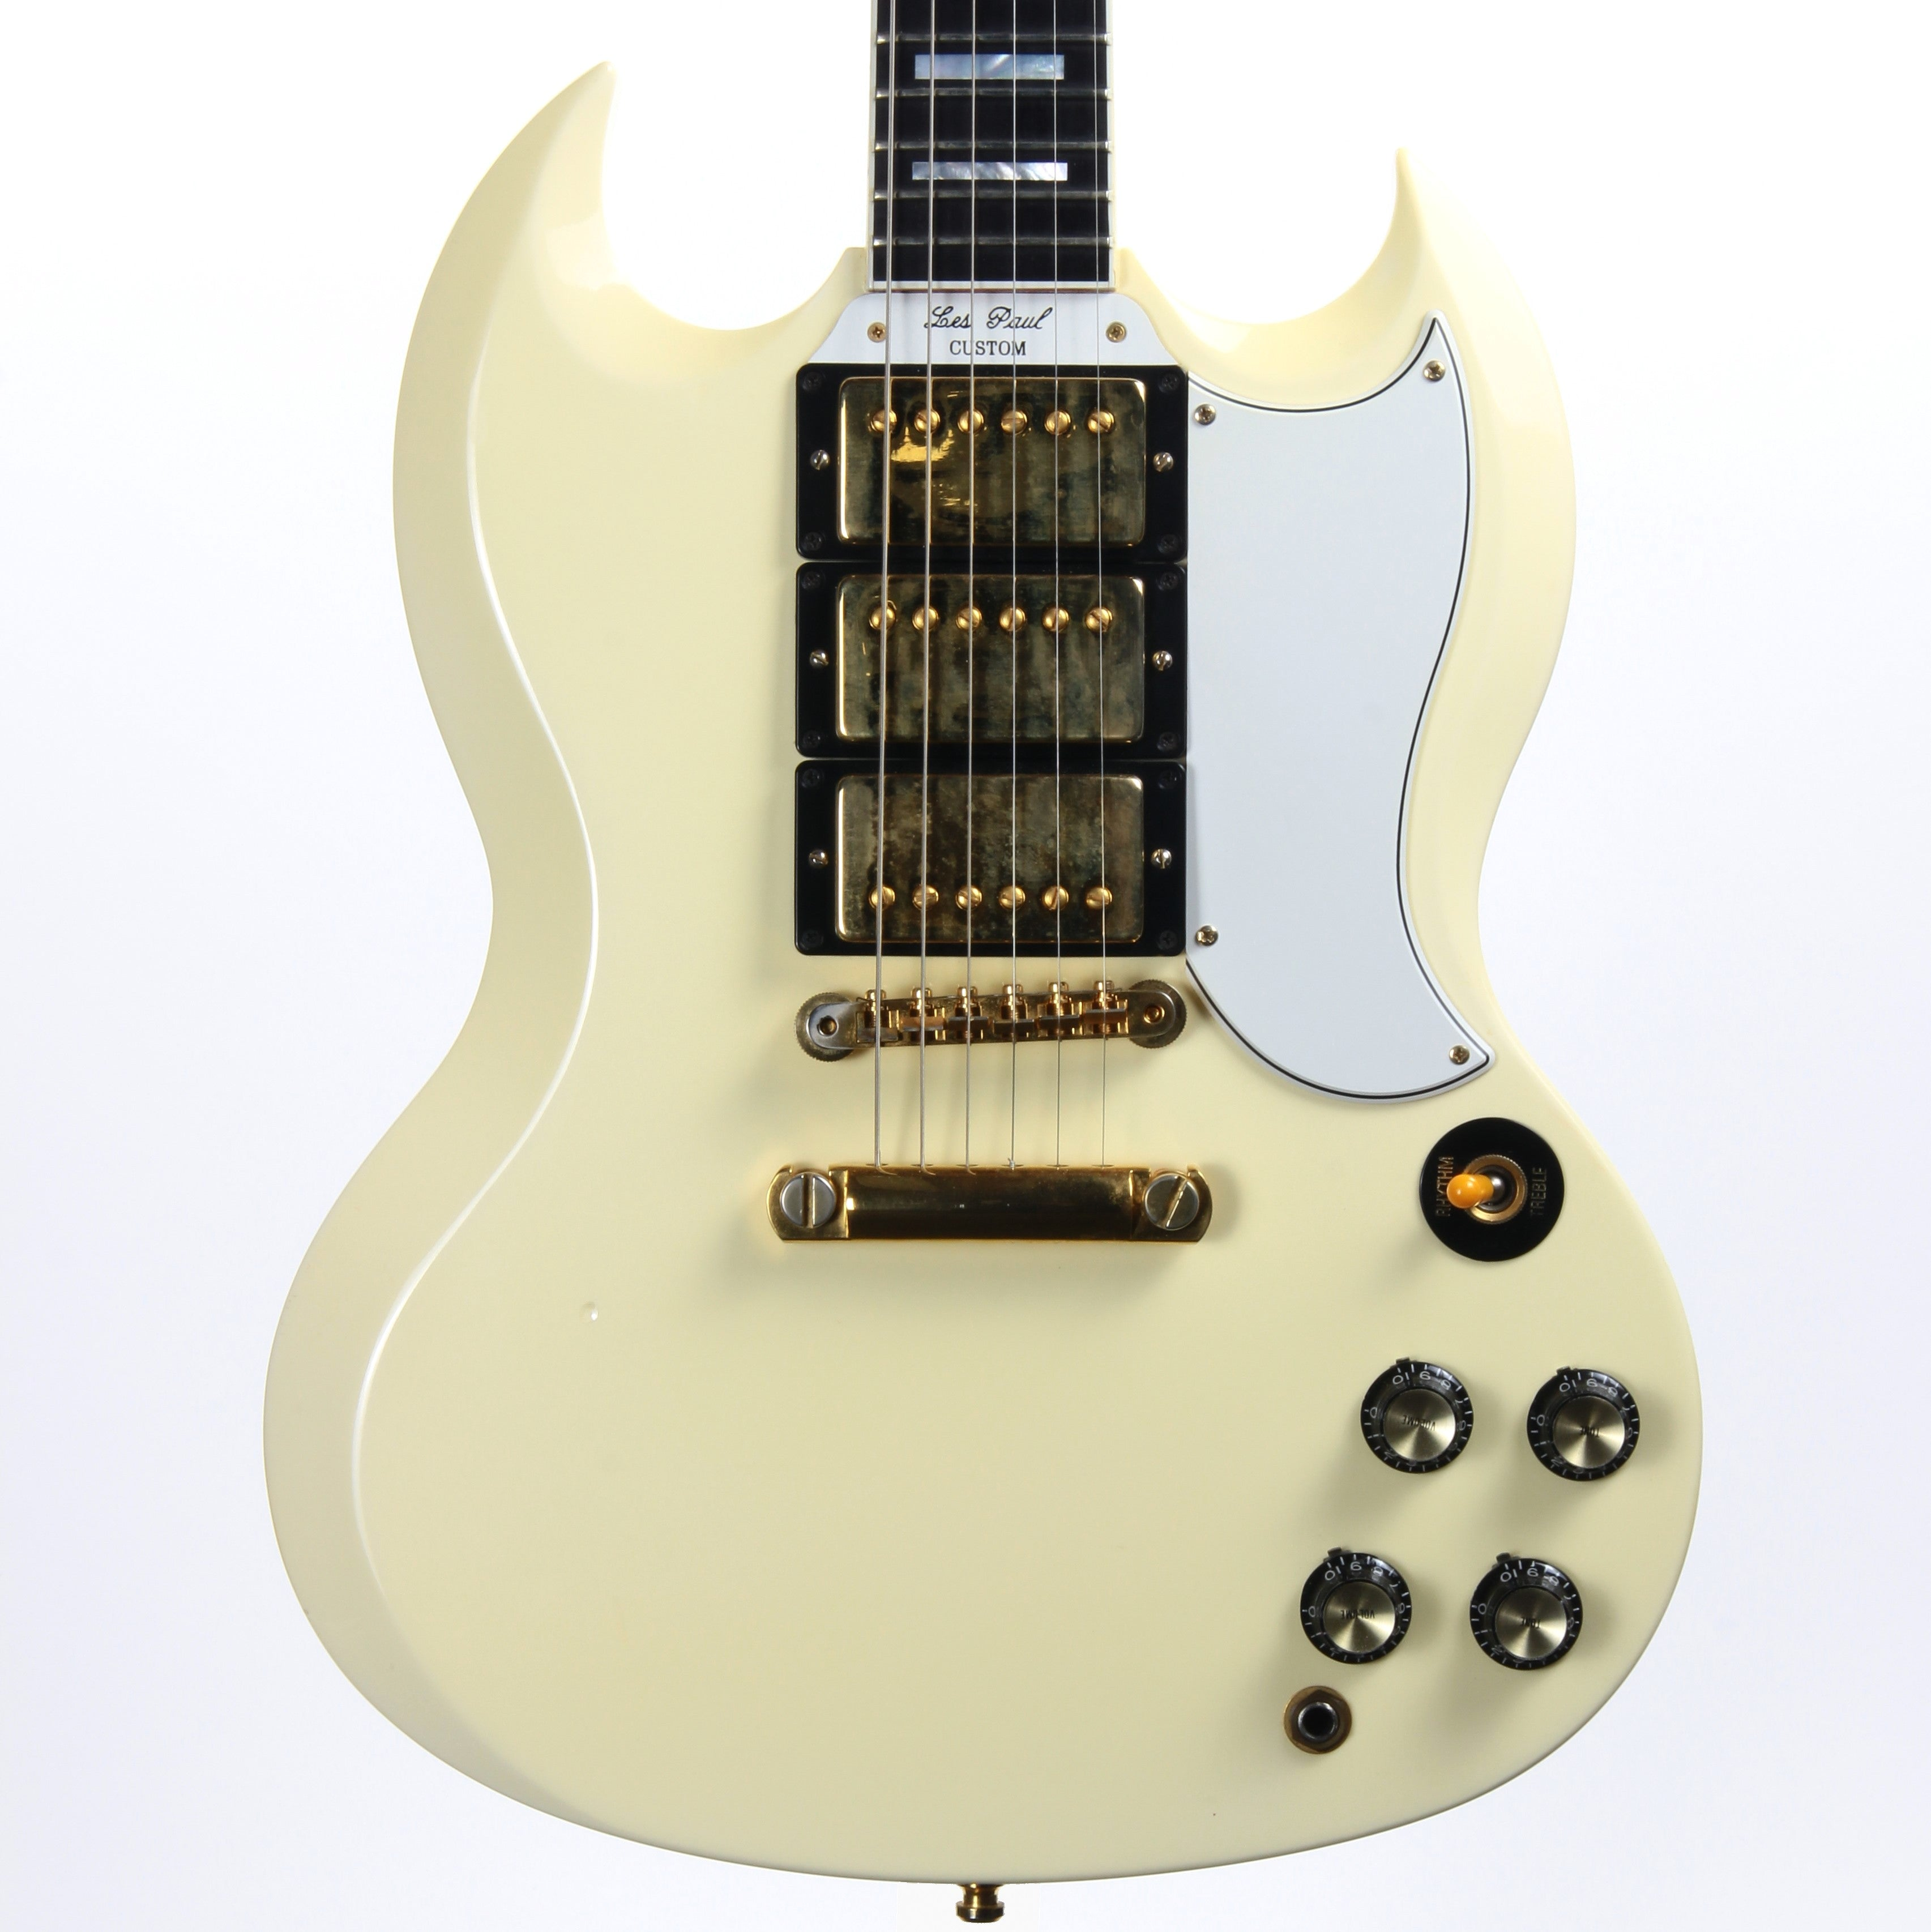 1998 Gibson SG Les Paul Custom Shop Historic - White, 3 Pickups